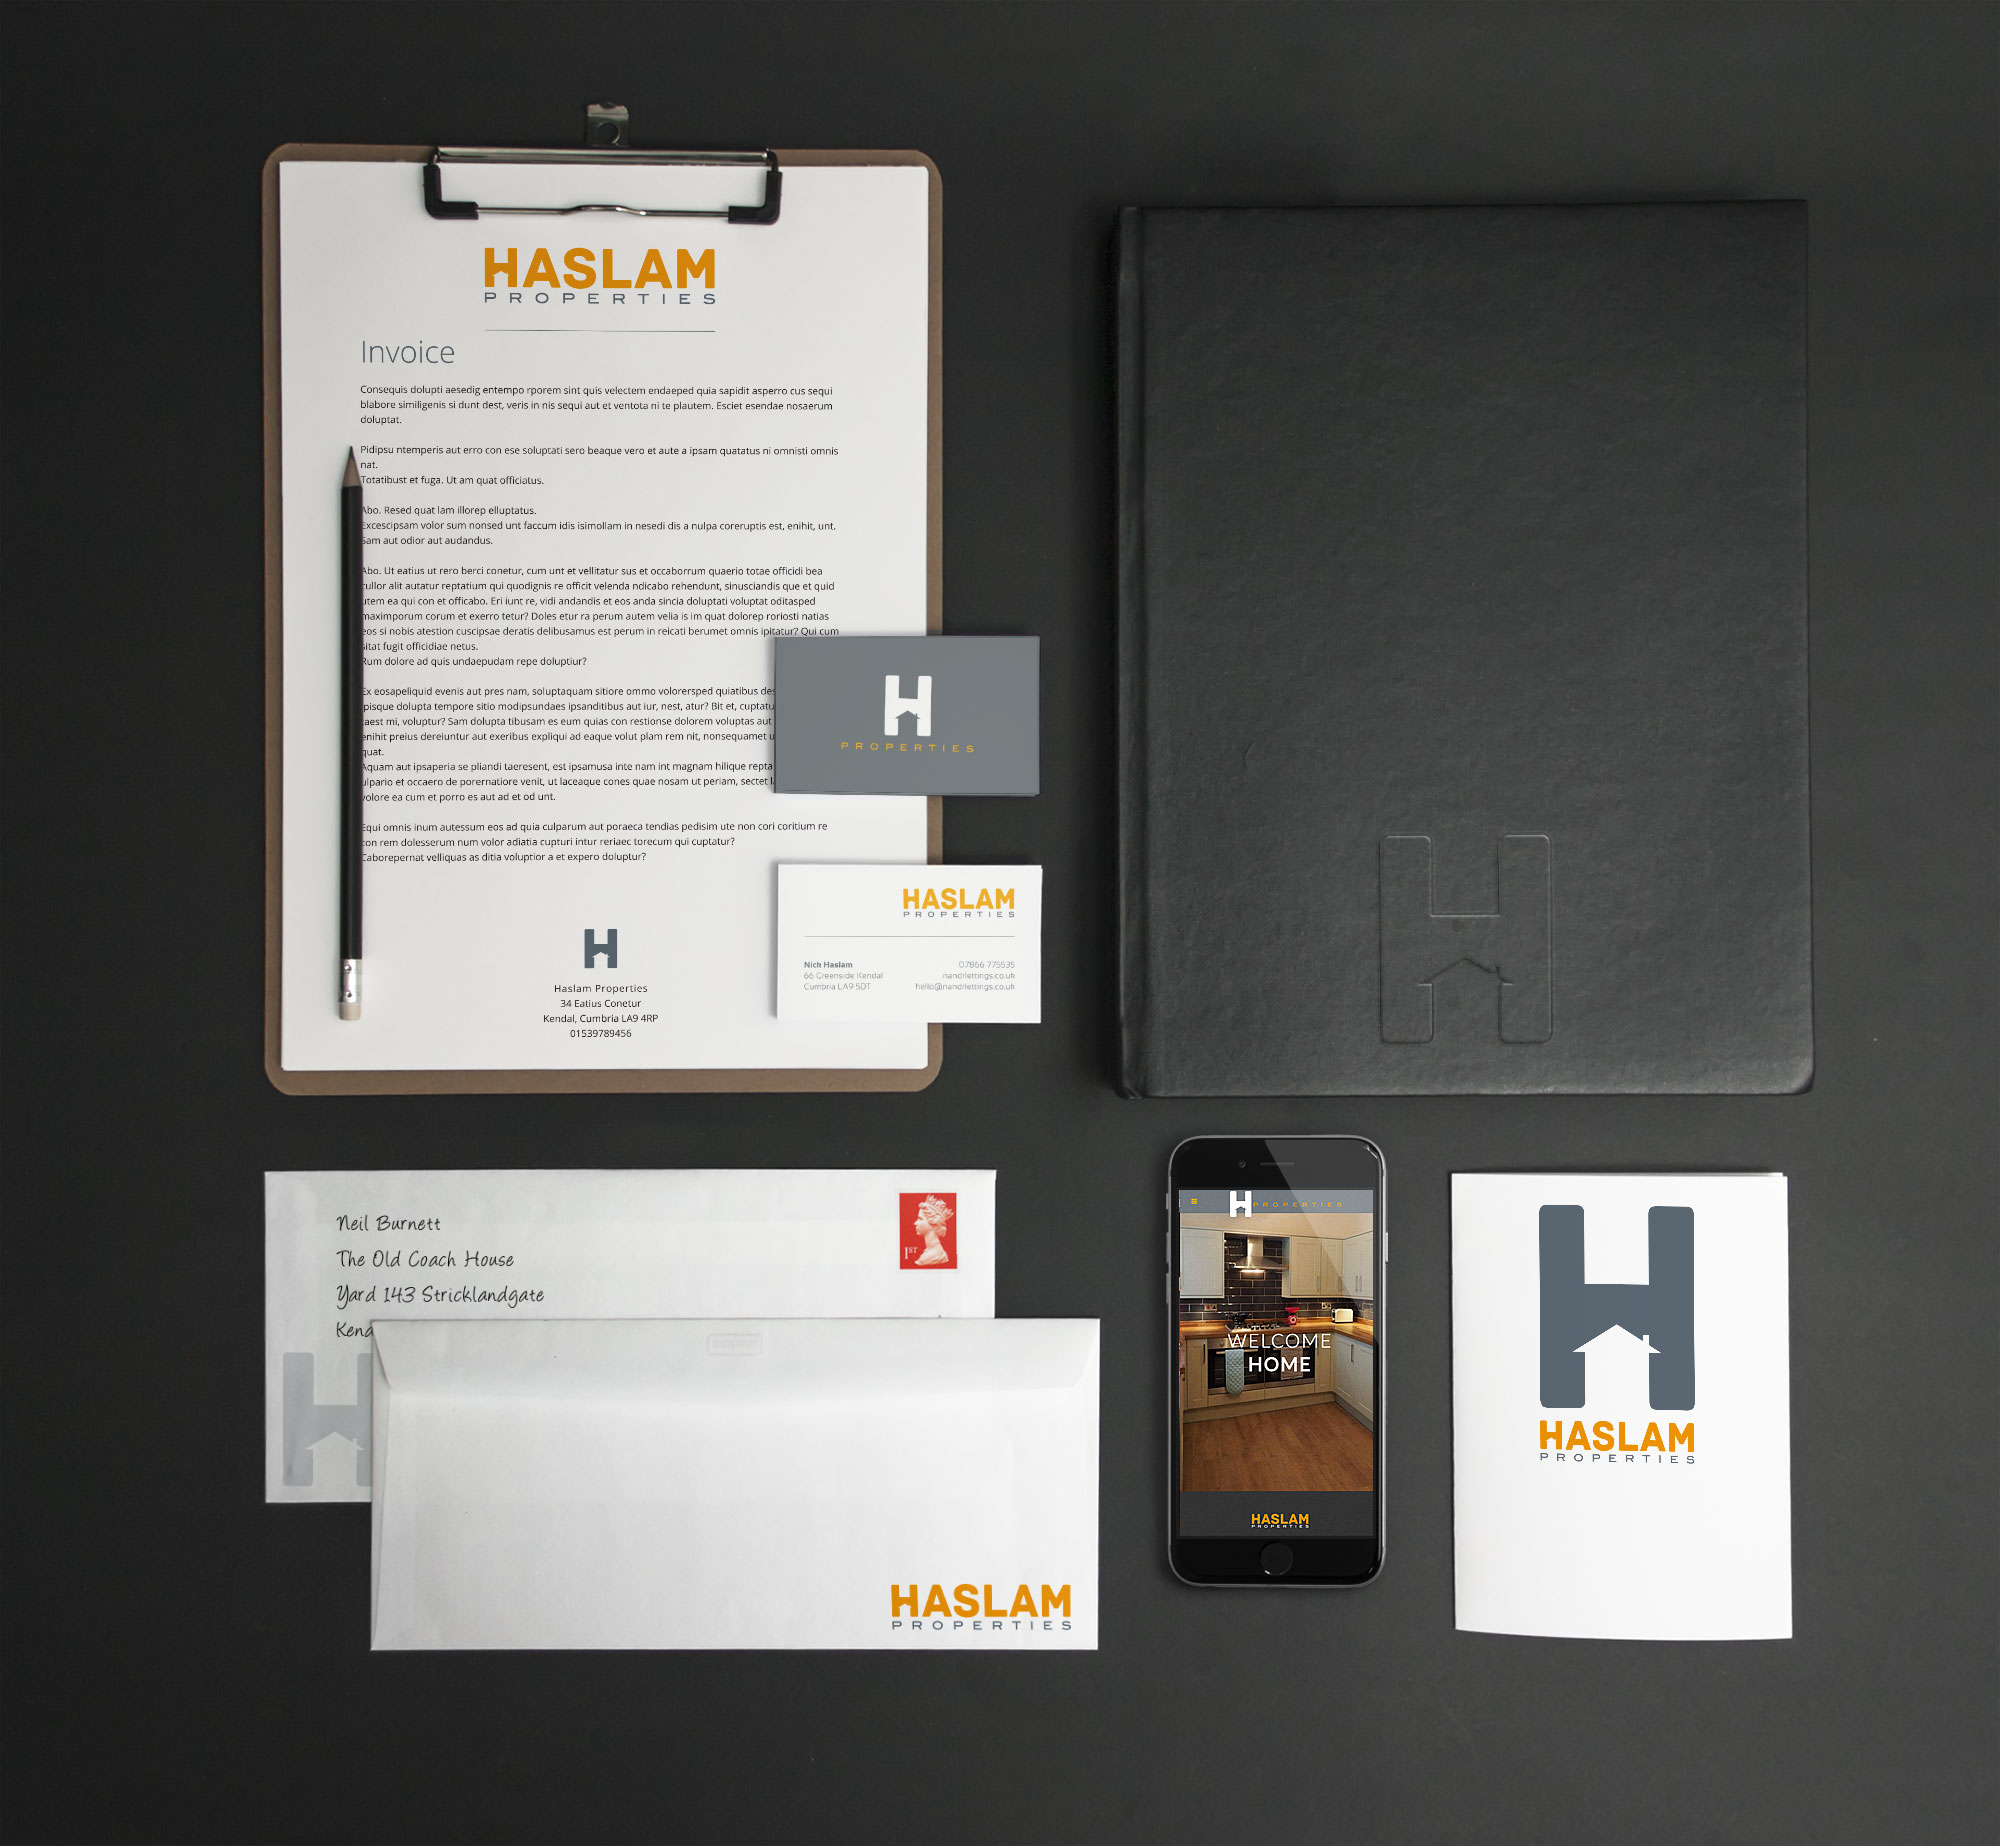 Leterheads and Business cards for Haslam Properties